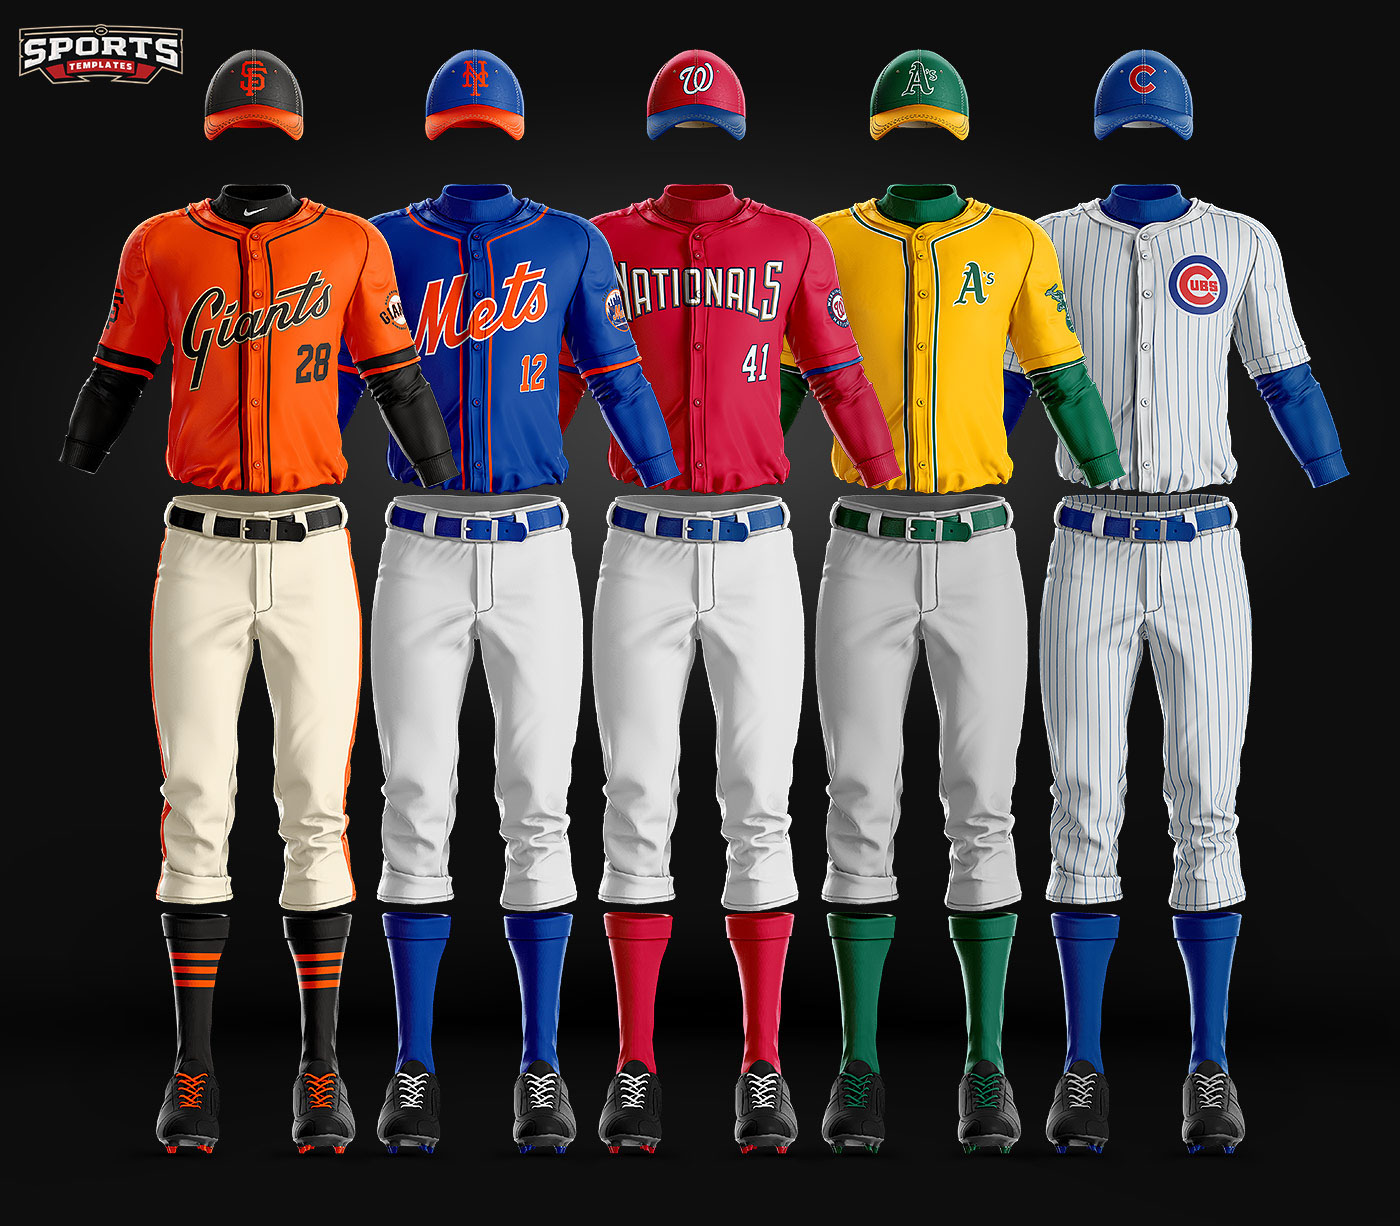 Grand Slam Baseball Uniform Template On Behance